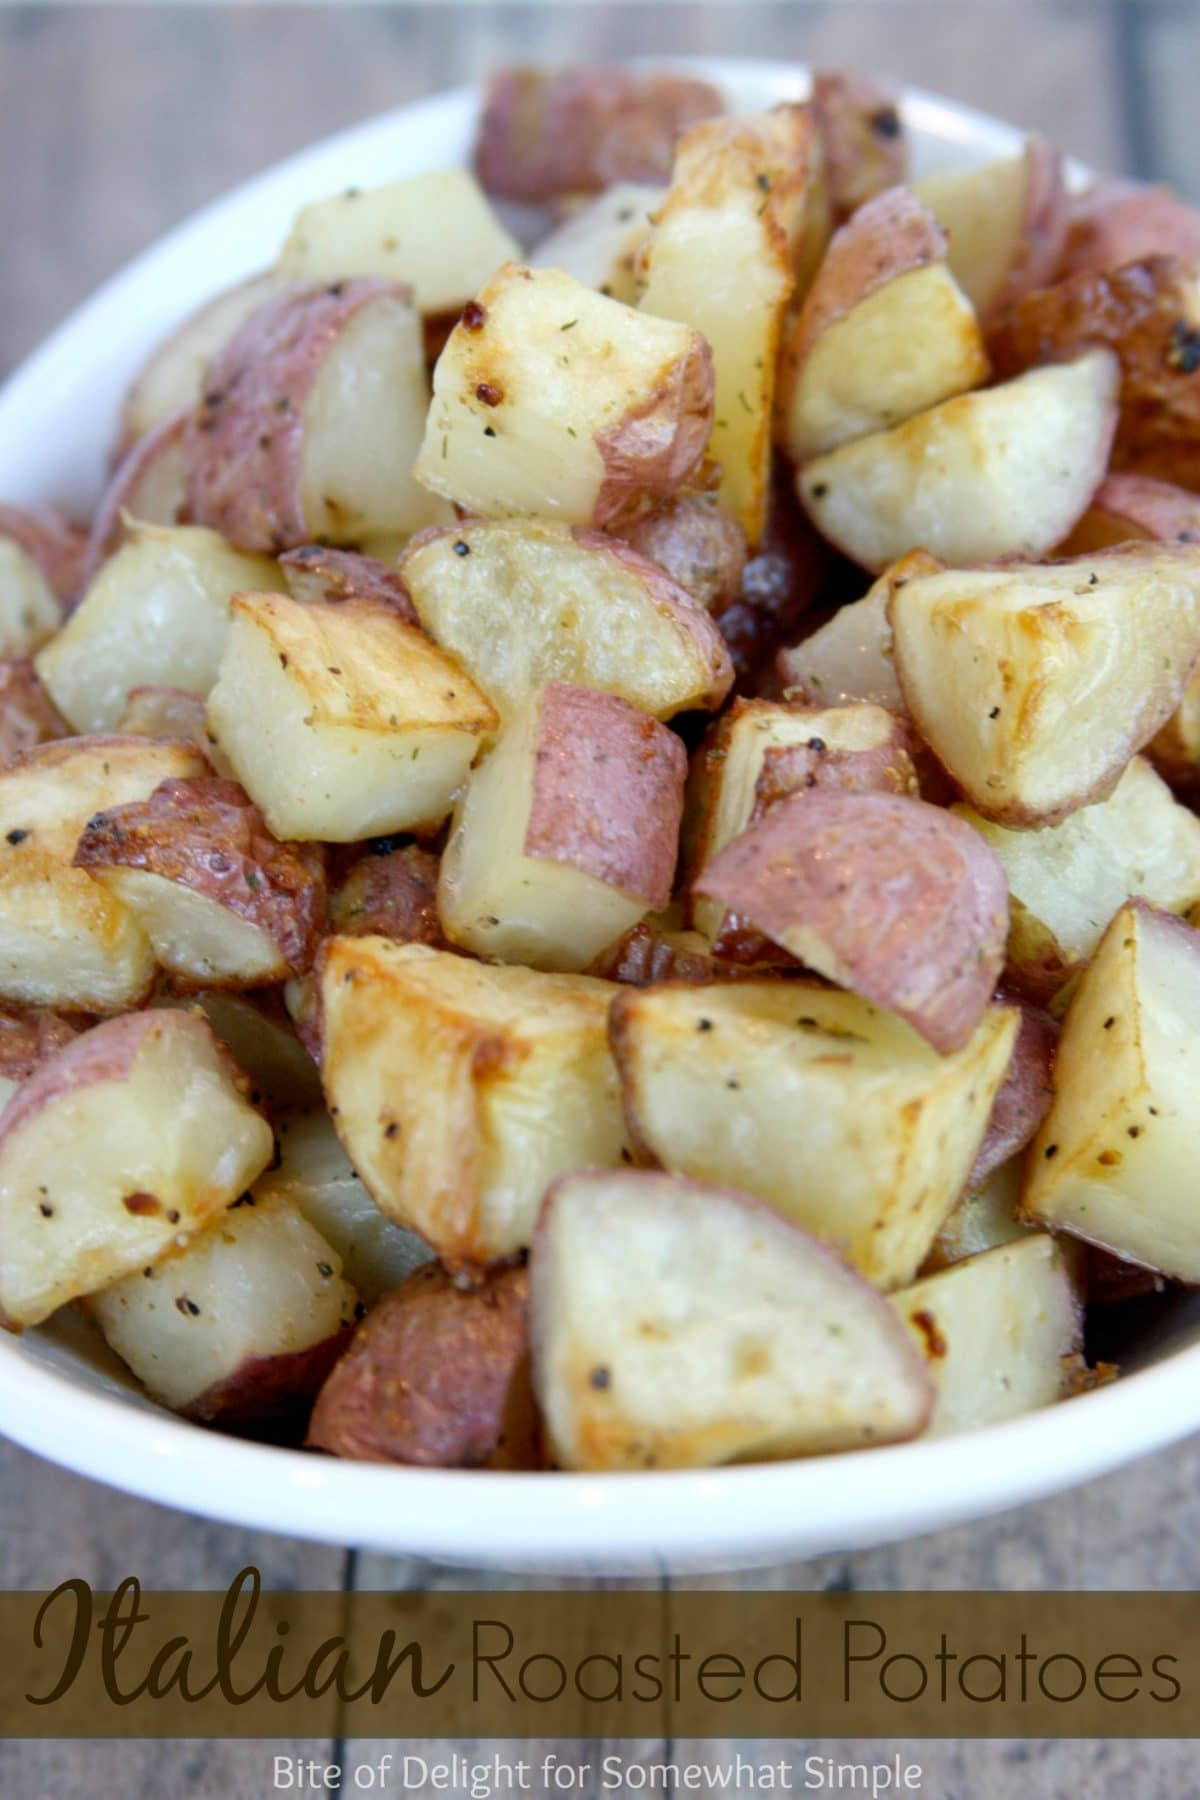 These simple, delicious roasted potatoes take just a few minutes of prep, and then they roast while you take care of the main course. #sidedish #easyrecipe #recipe #potato #dinner  via @somewhatsimple